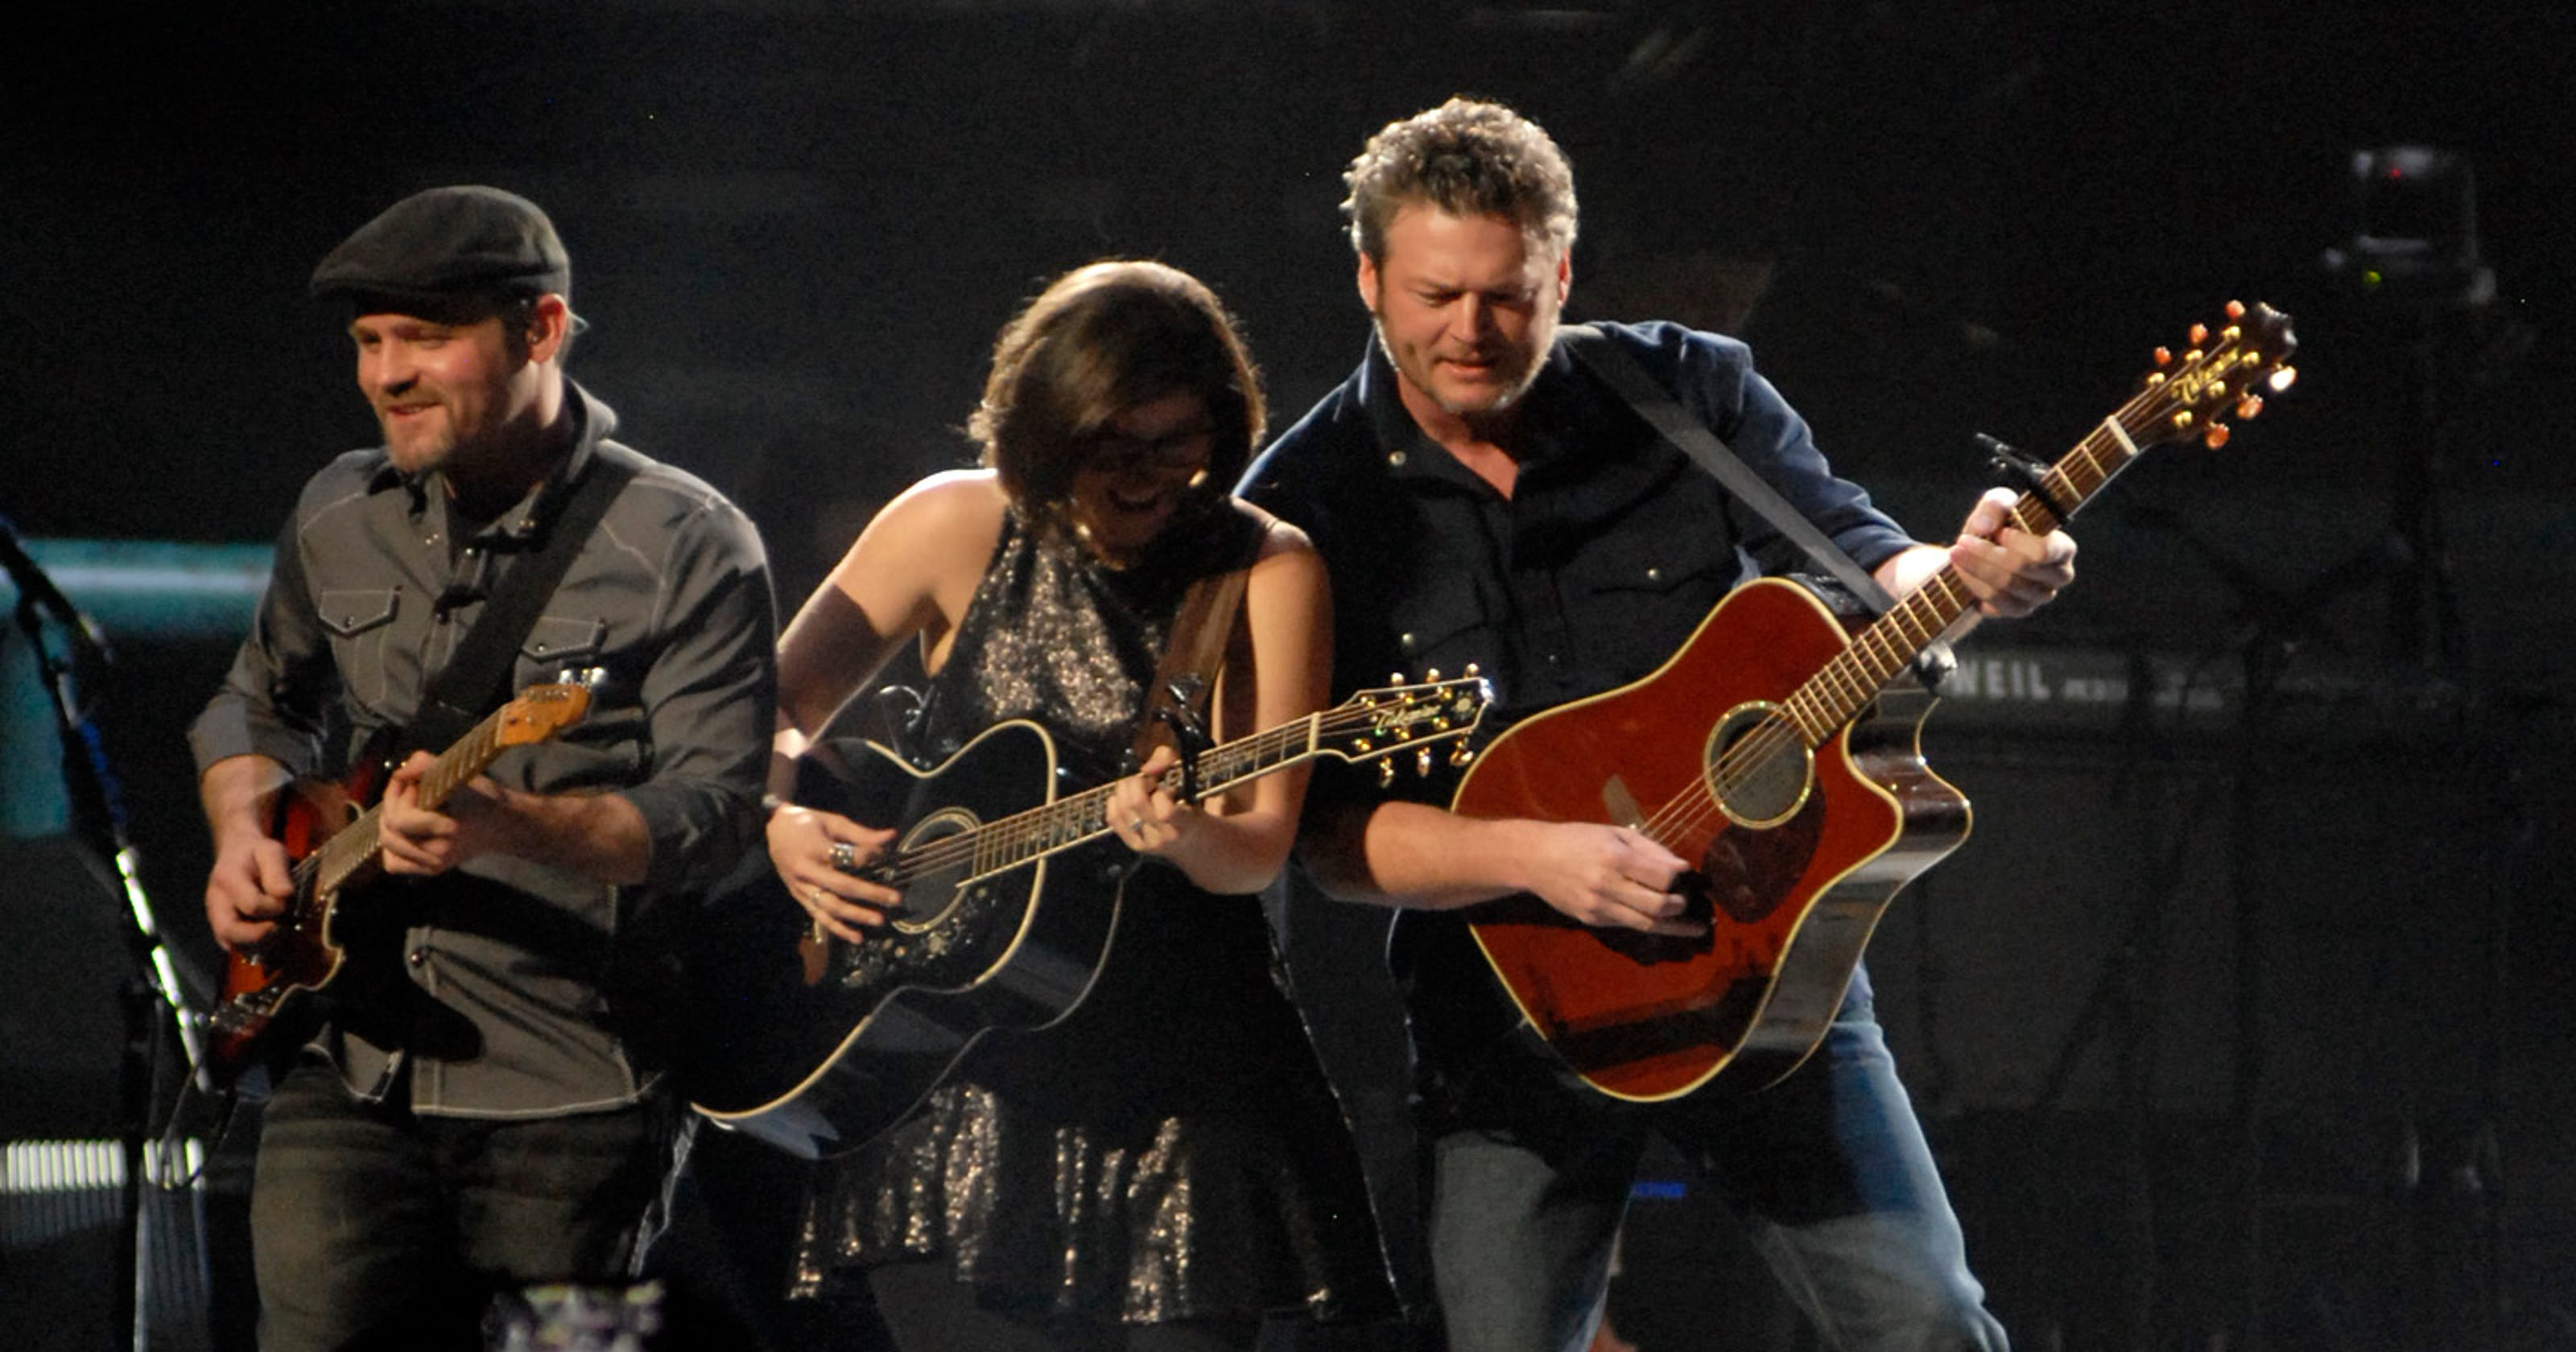 Blake Shelton Delivers Solid Show At Yum Center